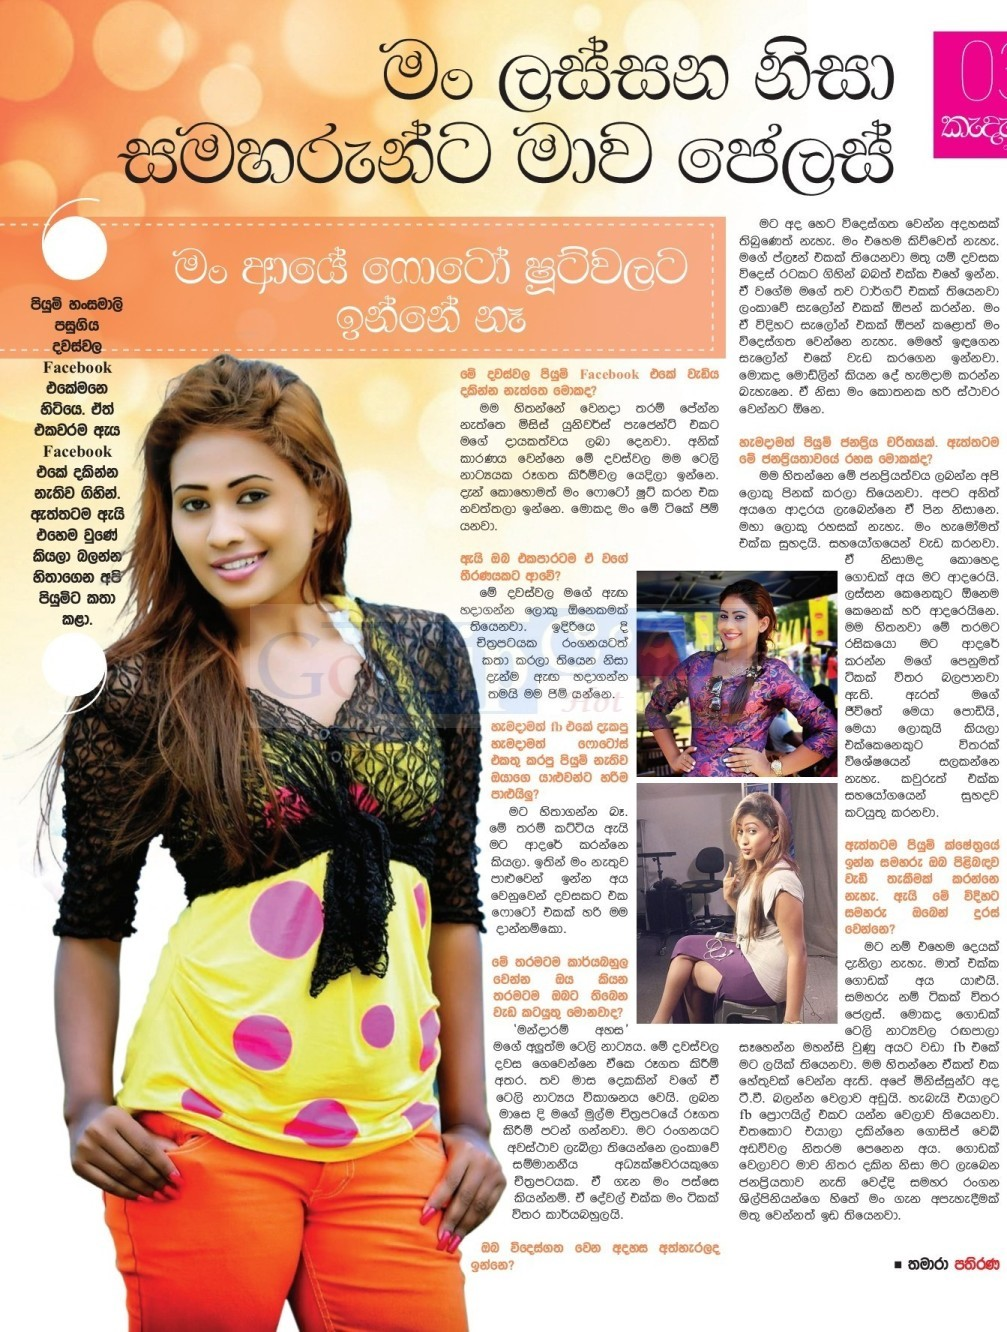 Gossip Chat with Piumi Hansamali